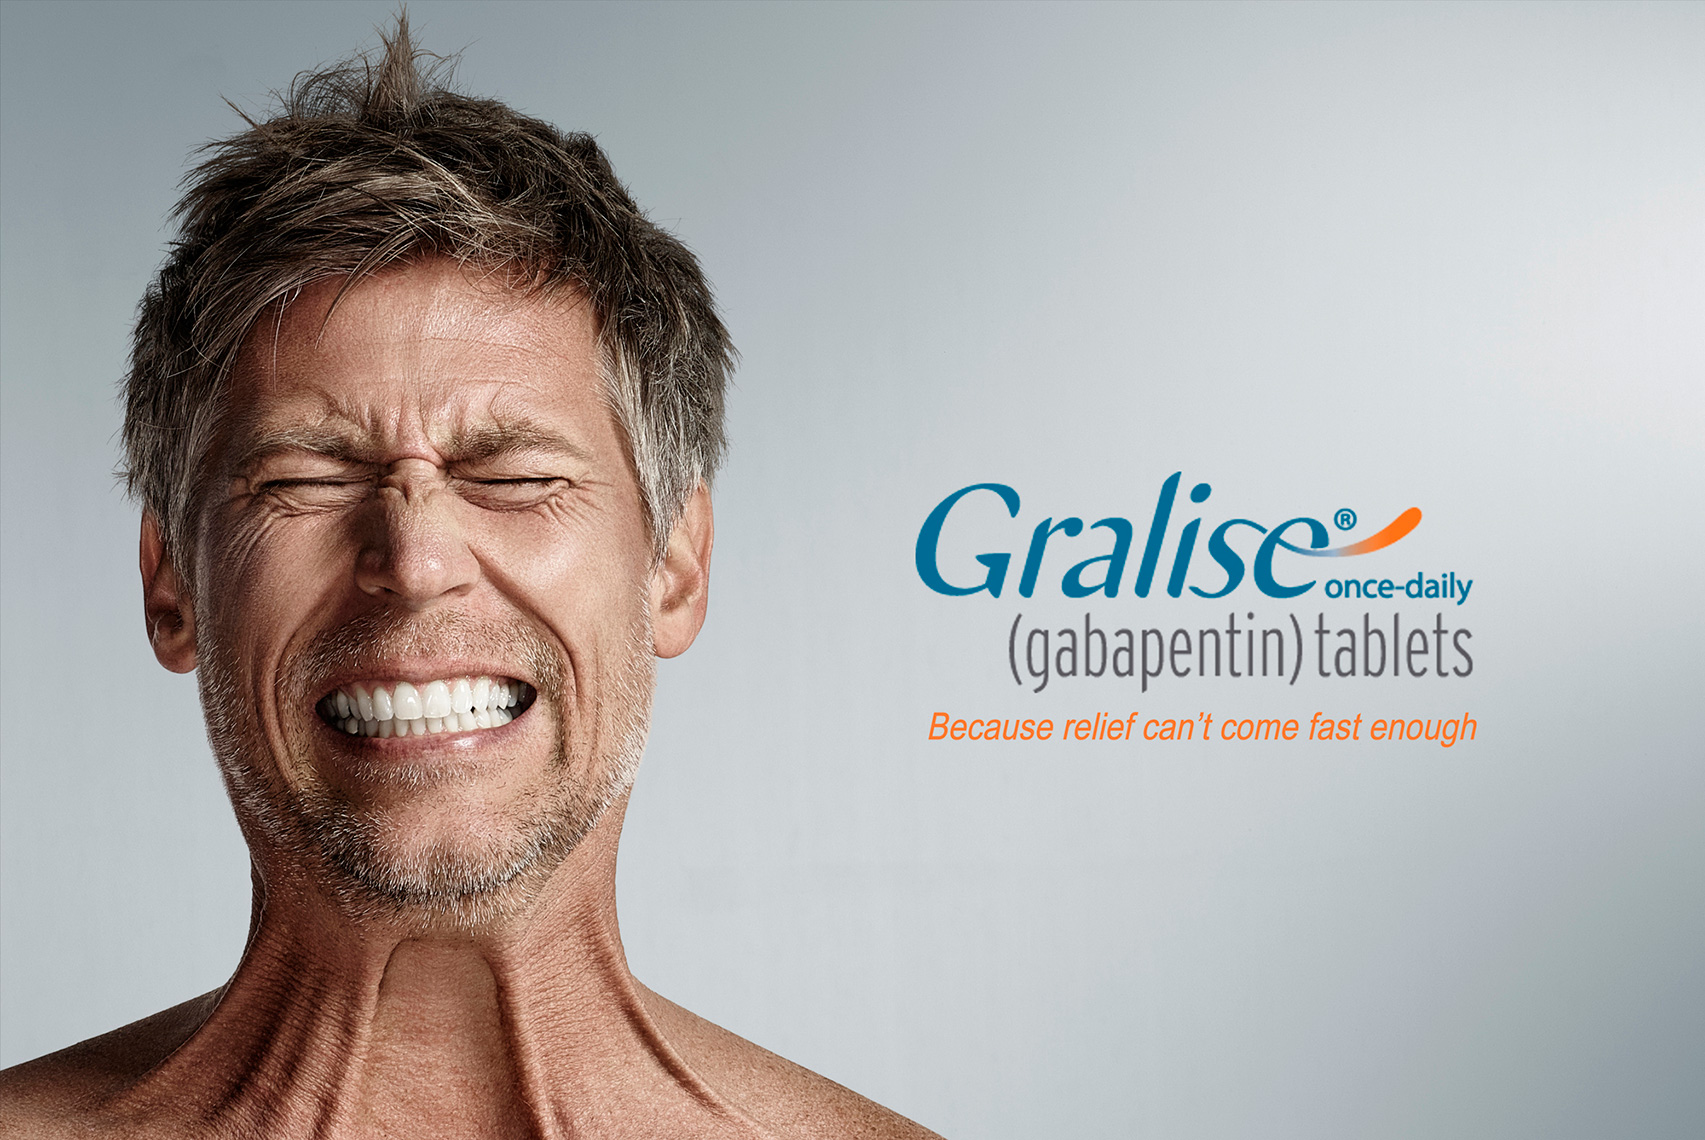 gralise-tear-sheet-flat